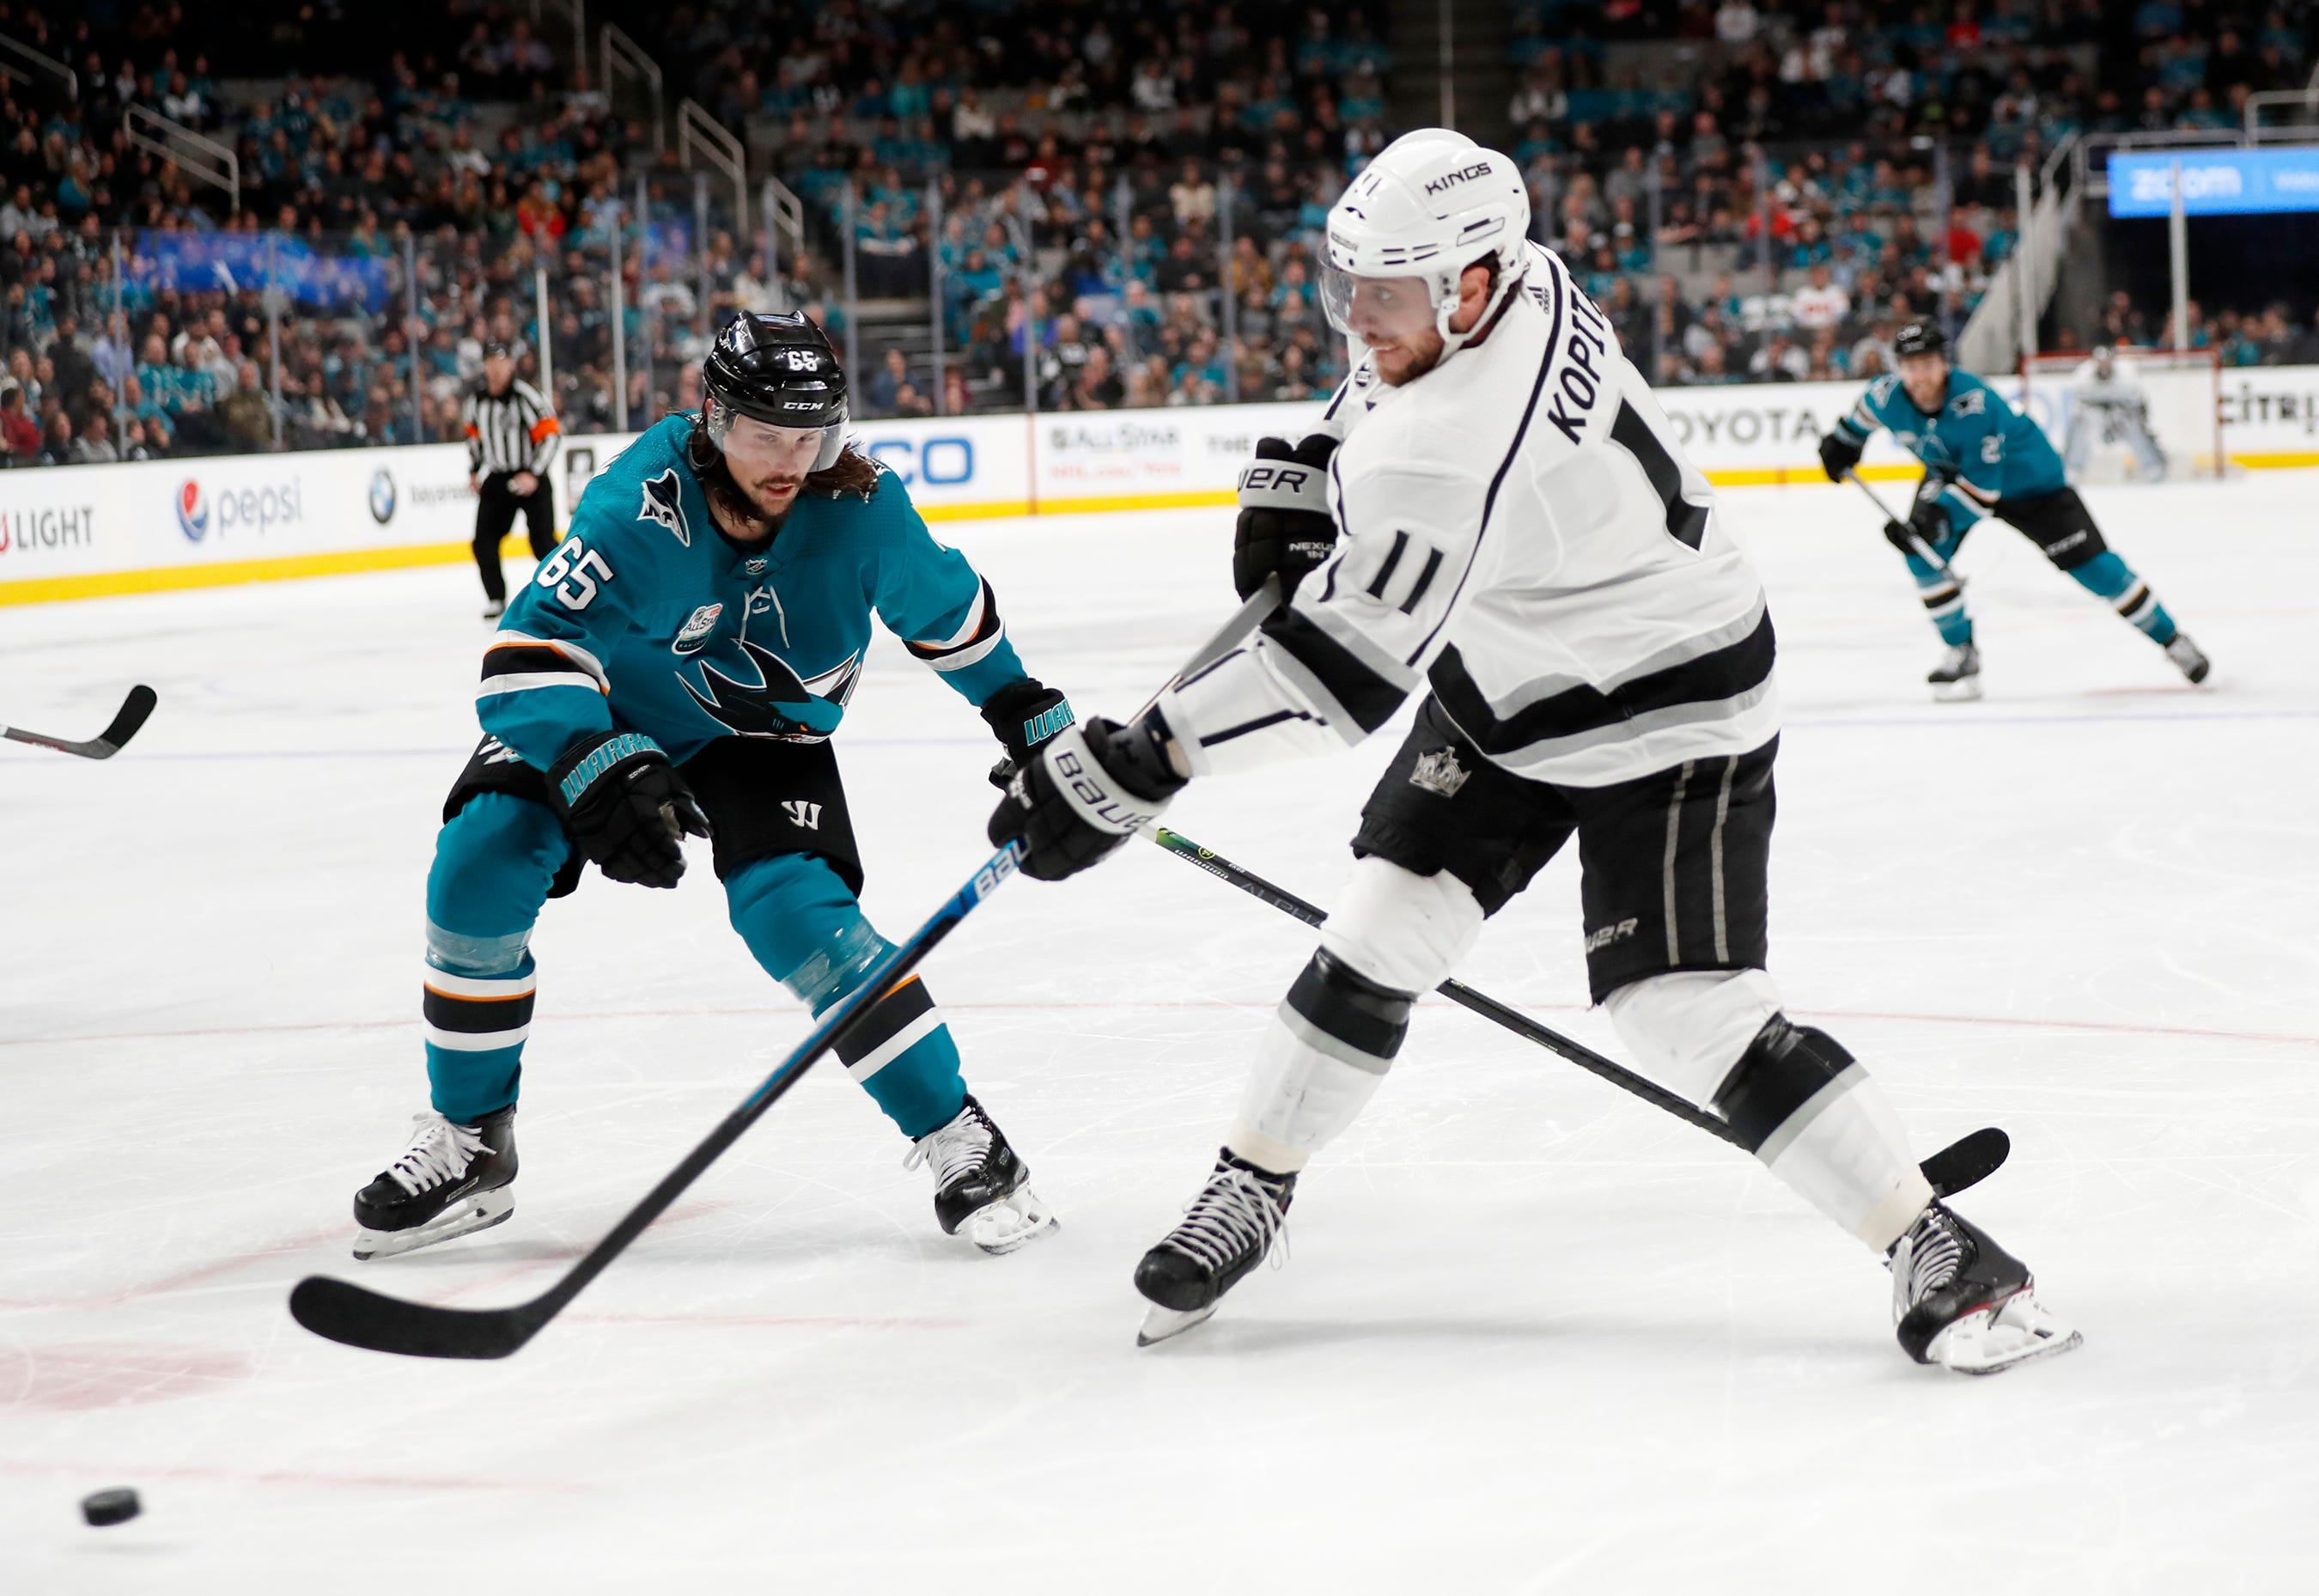 Karlsson has 3 assists as Sharks top Kings 3-1